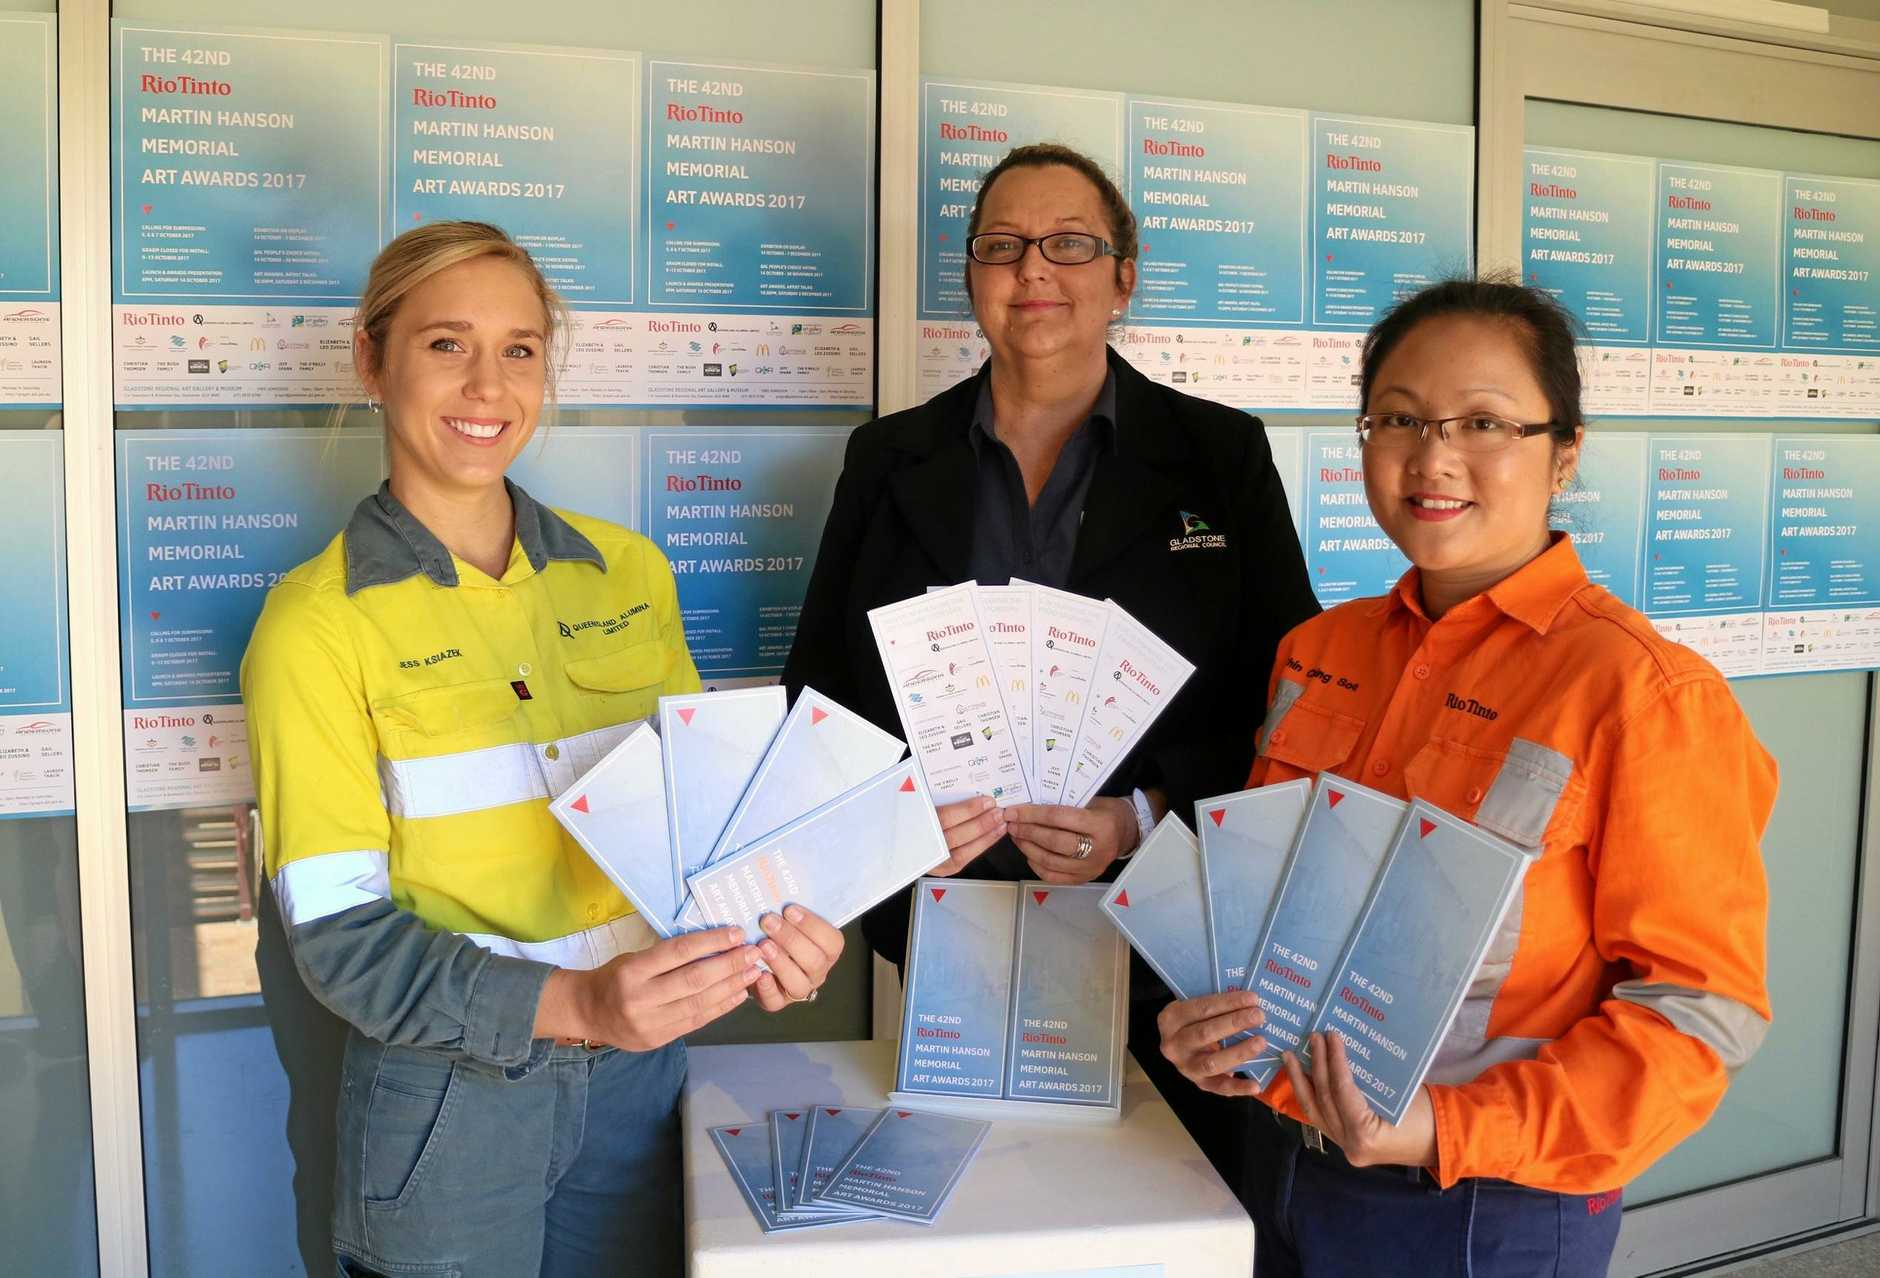 SUBMISSIONS READY: Queensland Alumina Limited communications and communities advisor Jessica Ksiazek, Gladstone Regional Art Gallery & Museum curator Jo Duke and Rio Tinto Yarwun communities and communications specialist Chin Ching Soo with the 2017 Rio Tinto Martin Hanson Memorial Art Awards entry forms.